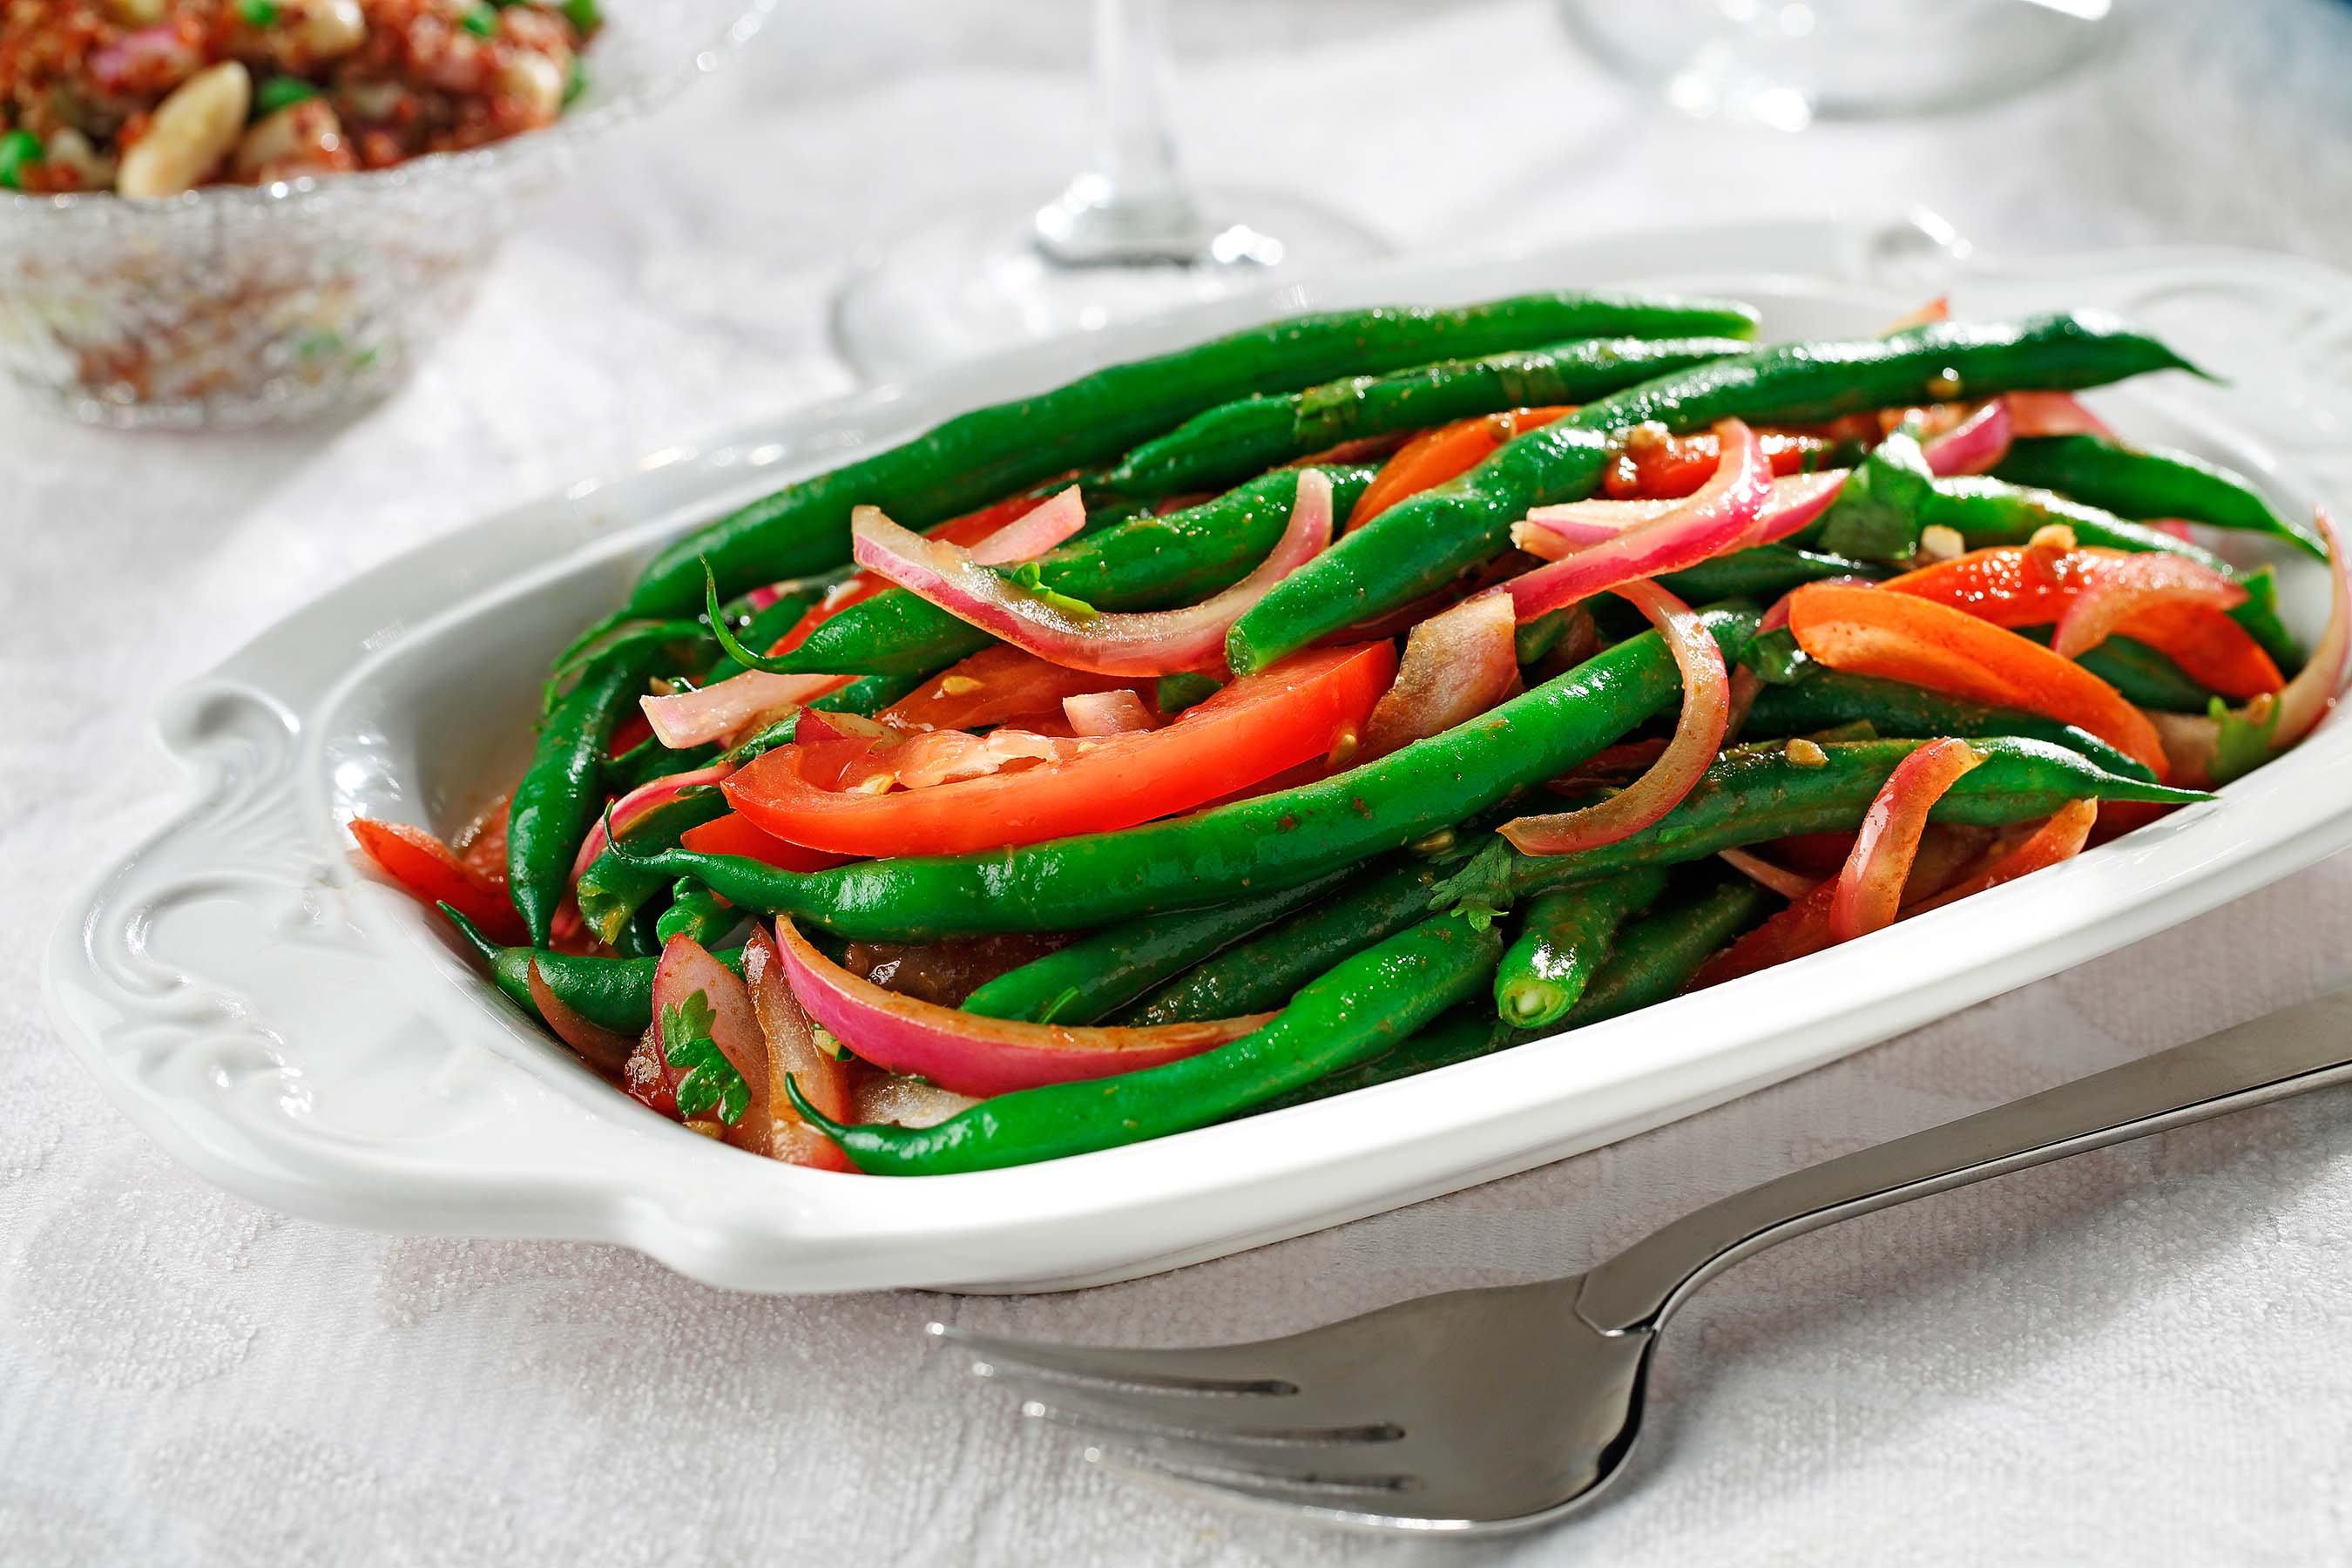 A healthy twist on the Peruvian classic lomo saltado, this recipe showcases green beans. Canola oil helps keep the dish's saturated fat content to a minimum compared to typical holiday sides.